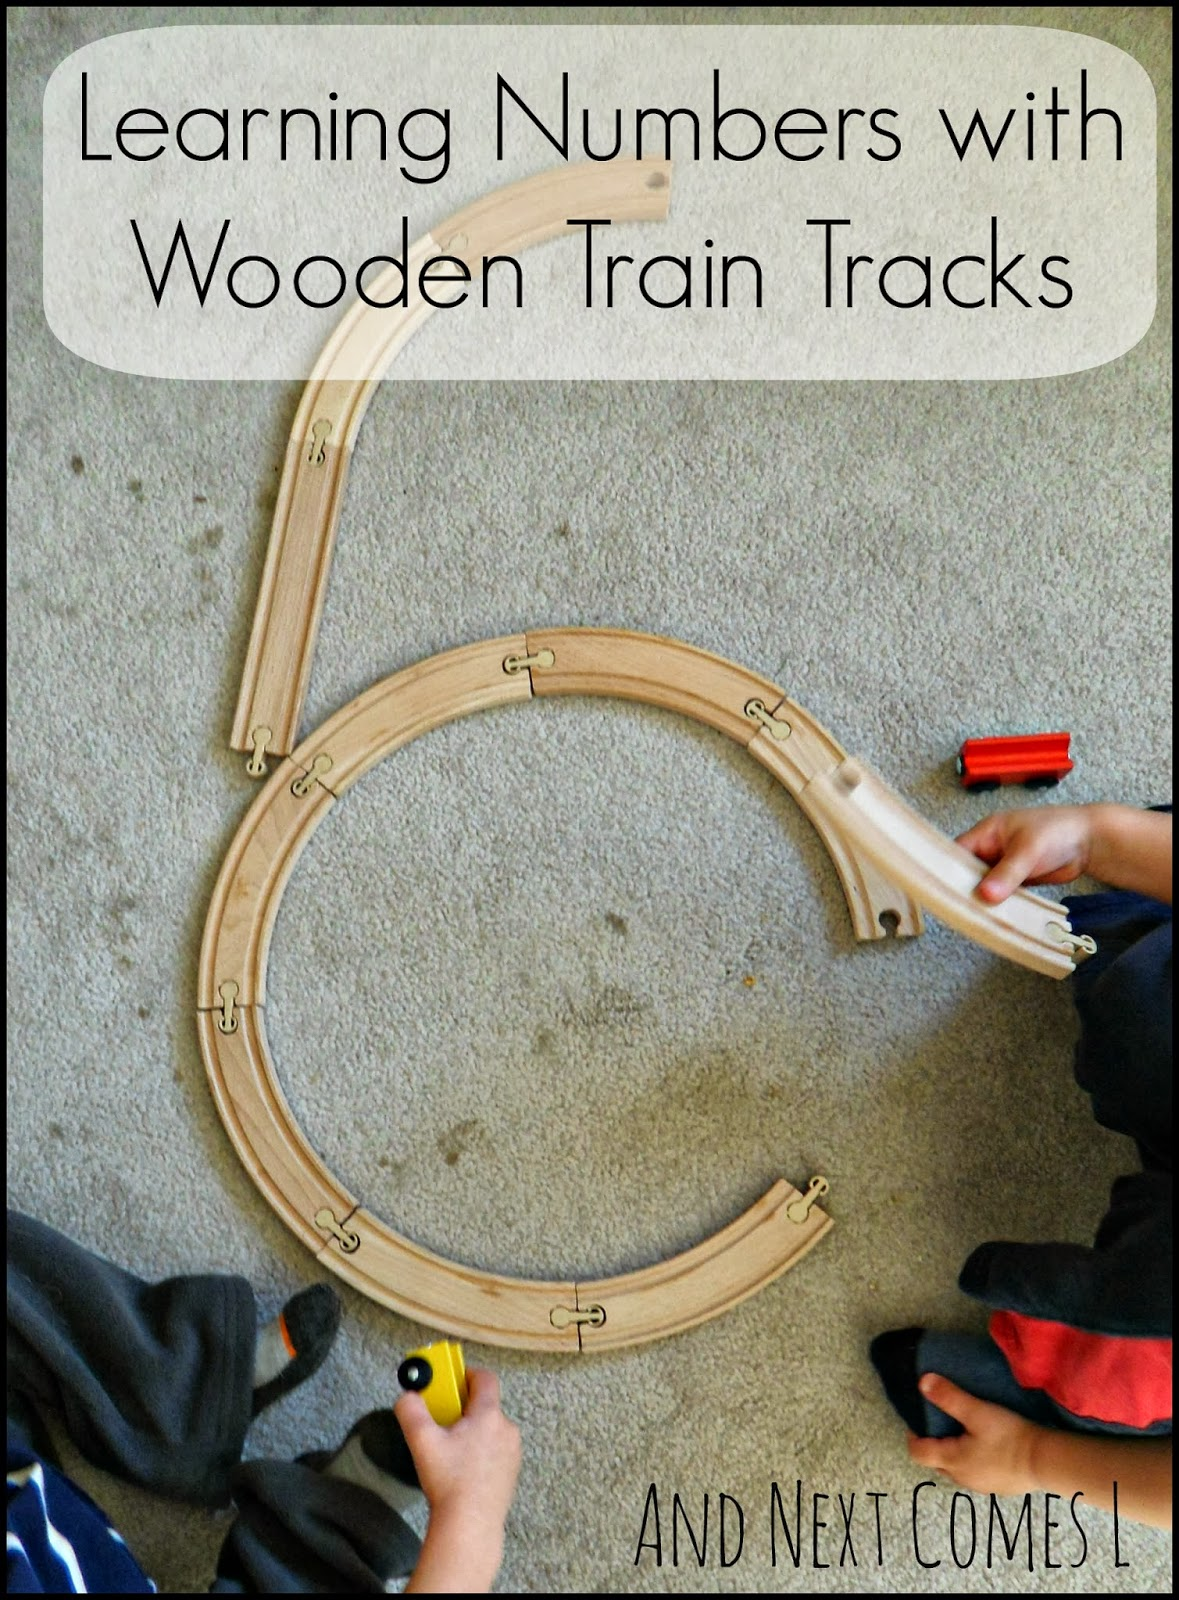 Wooden Train Tracks Learning Numbers With Wooden Train Tracks And Next Comes L